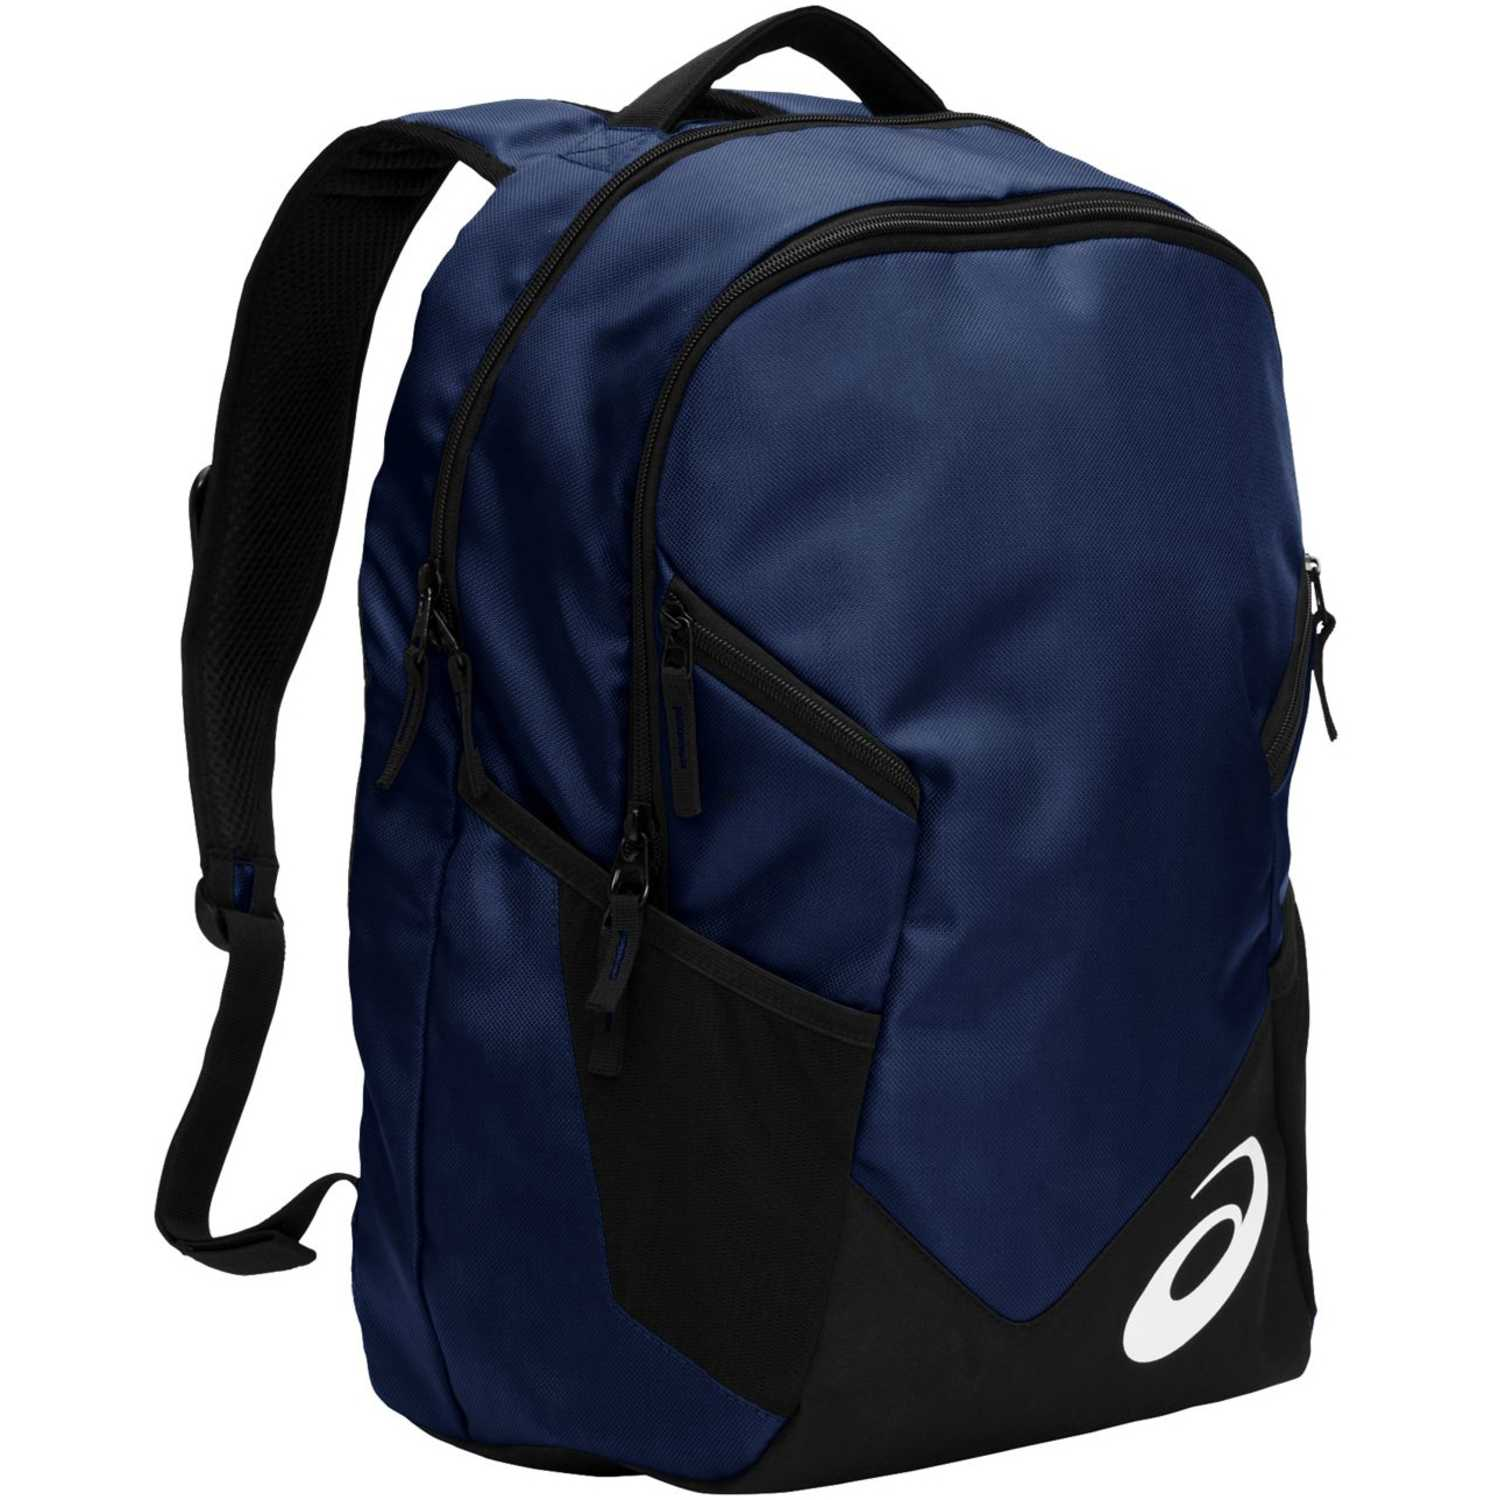 Asics Tm Edge Ii Backpack Azul / negro Mochilas multipropósitos